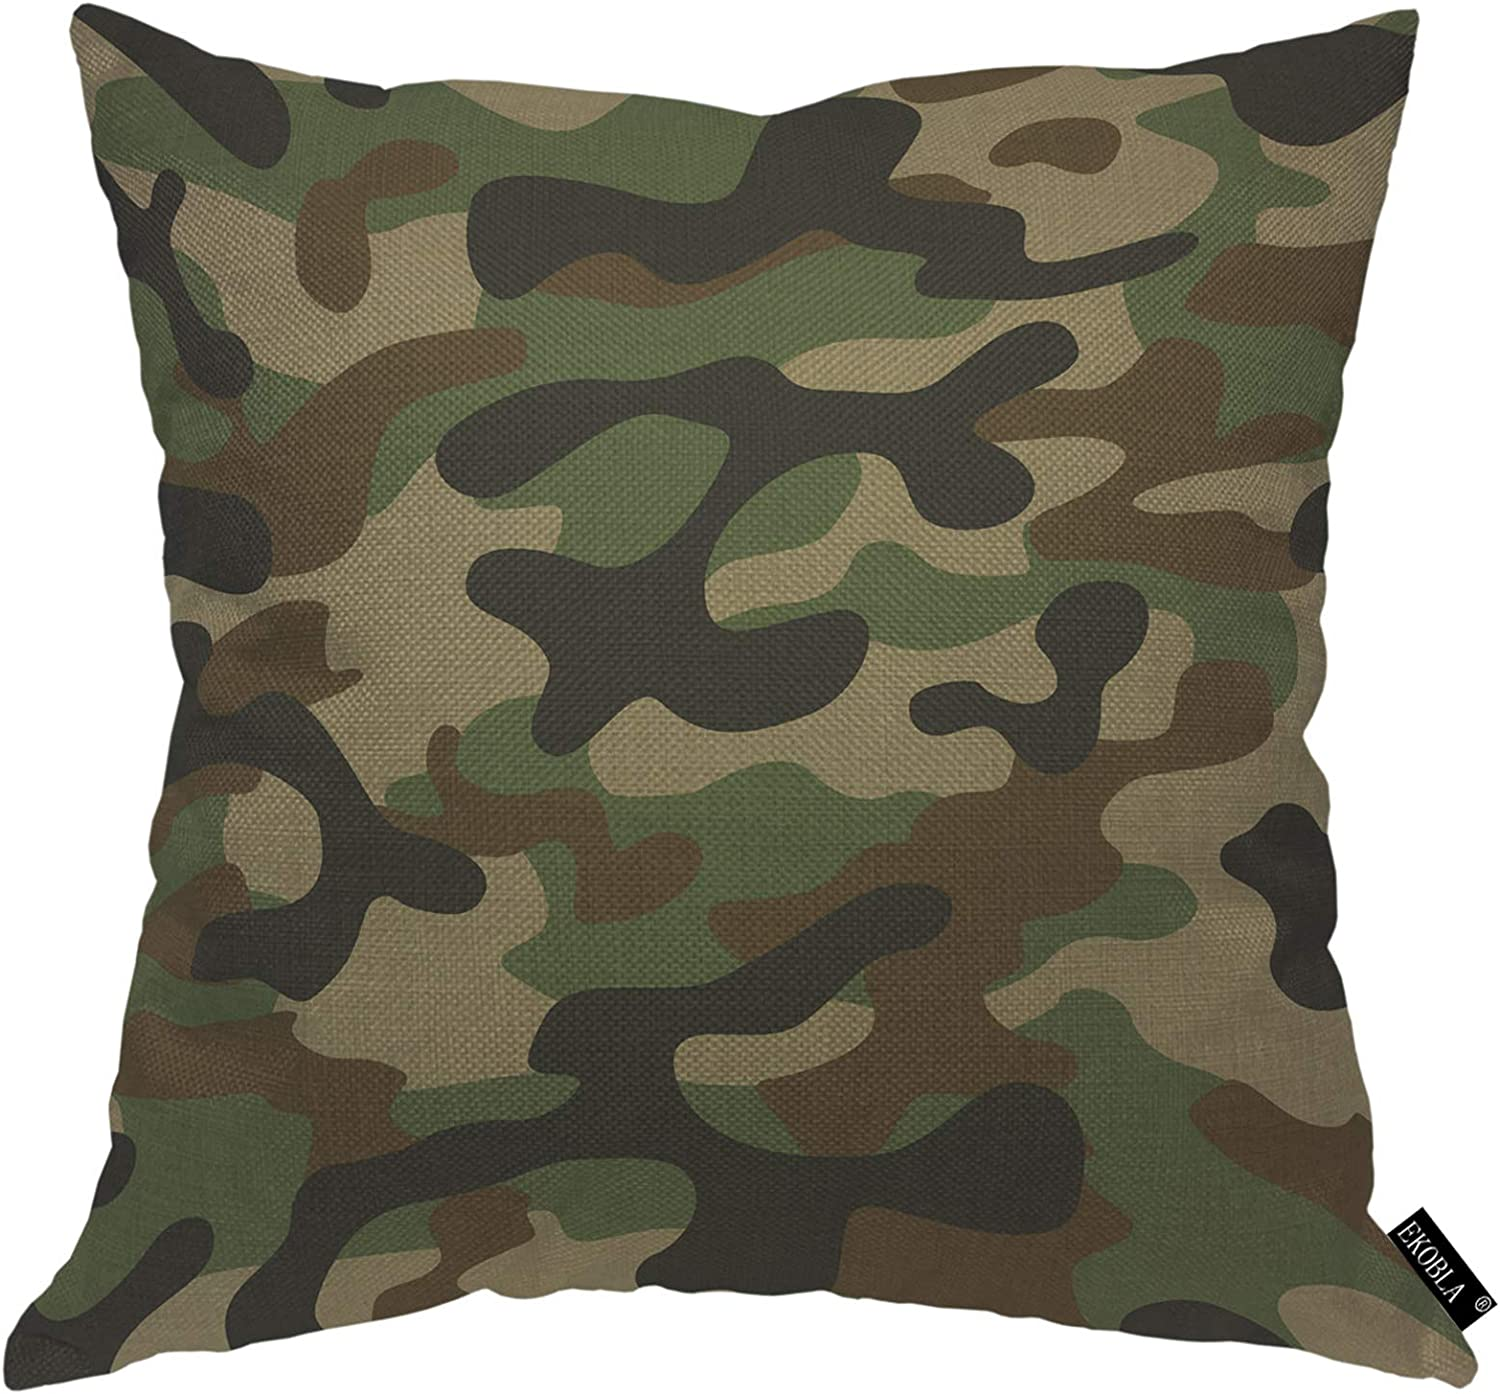 EKOBLA Camouflage Throw Pillow Cover Military Army Green Hunting Solider Combat Forest Woodland Cozy Square Cushion Case for Men Women Boys Girls Room Home Decor Cotton Linen 18x18 Inch